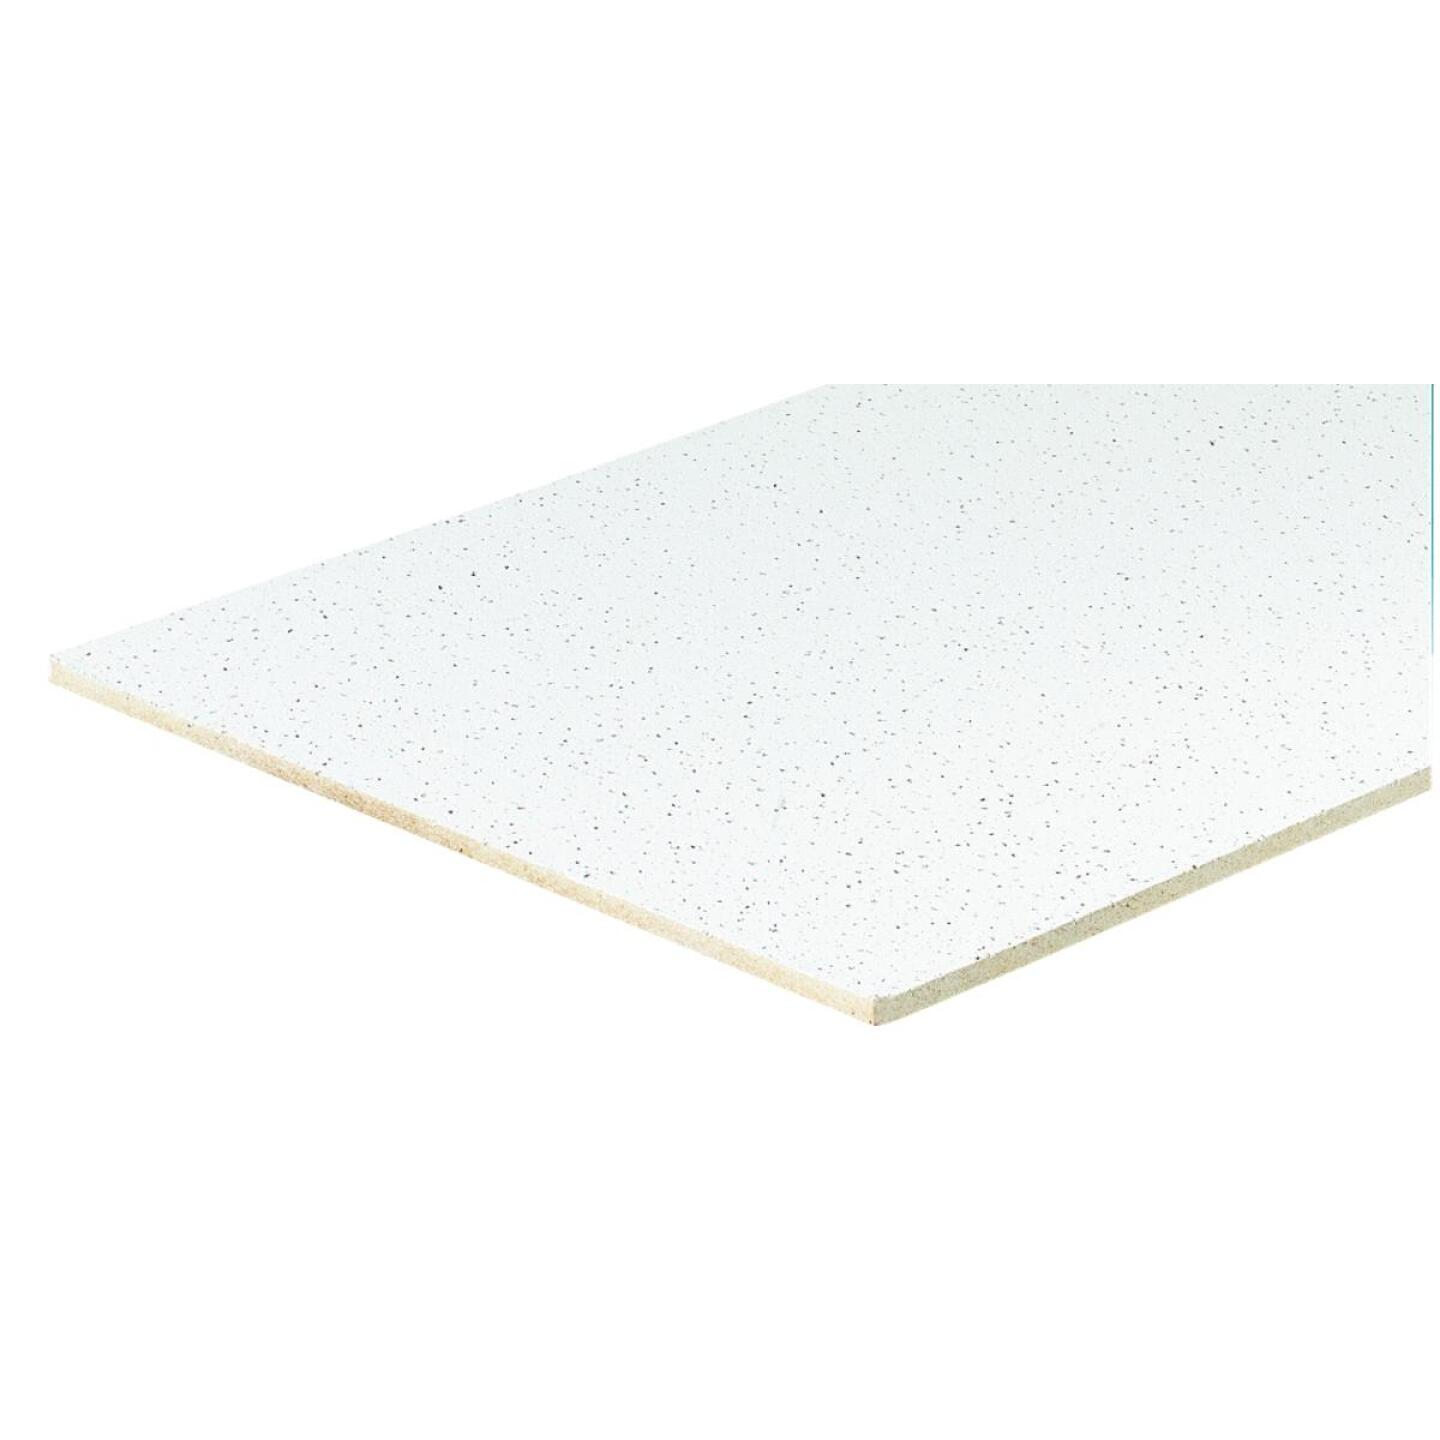 Radar Fissured 2 Ft. x 4 Ft. White Mineral Fiber Square Edge Suspended Ceiling Tile (8-Count) Image 3